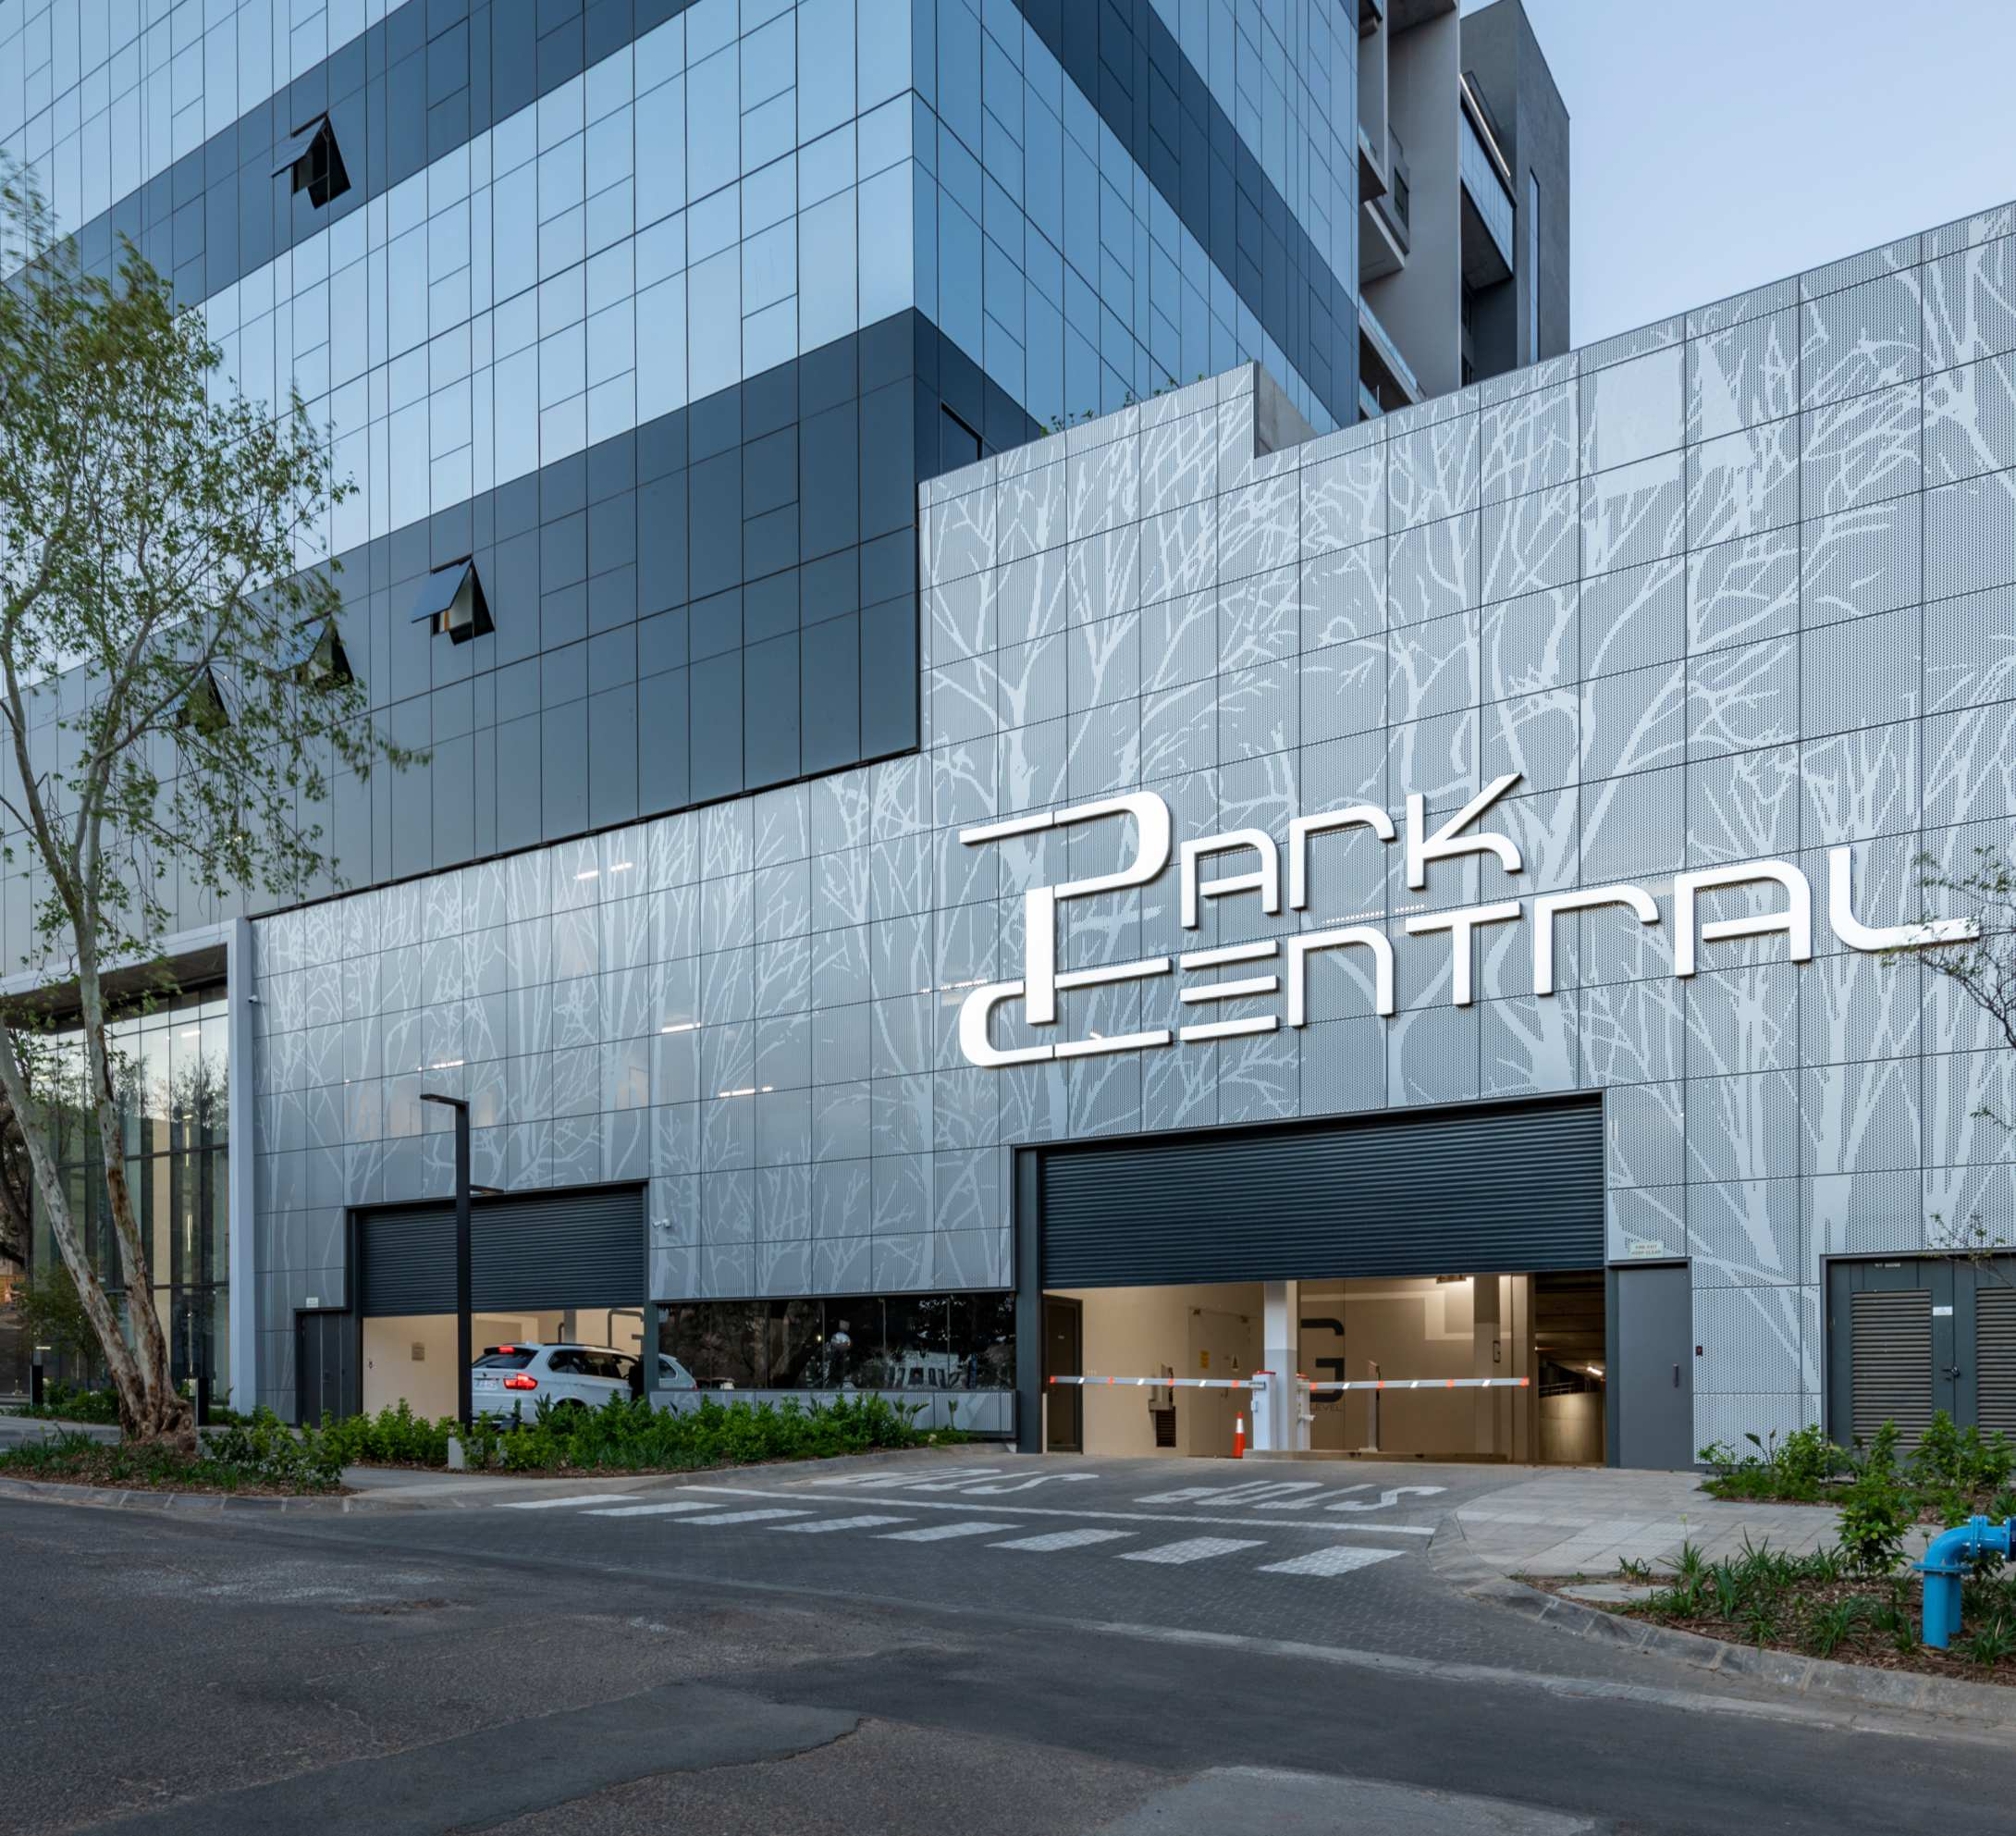 Paragon Apartments: Park Central Apartments Image Gallery